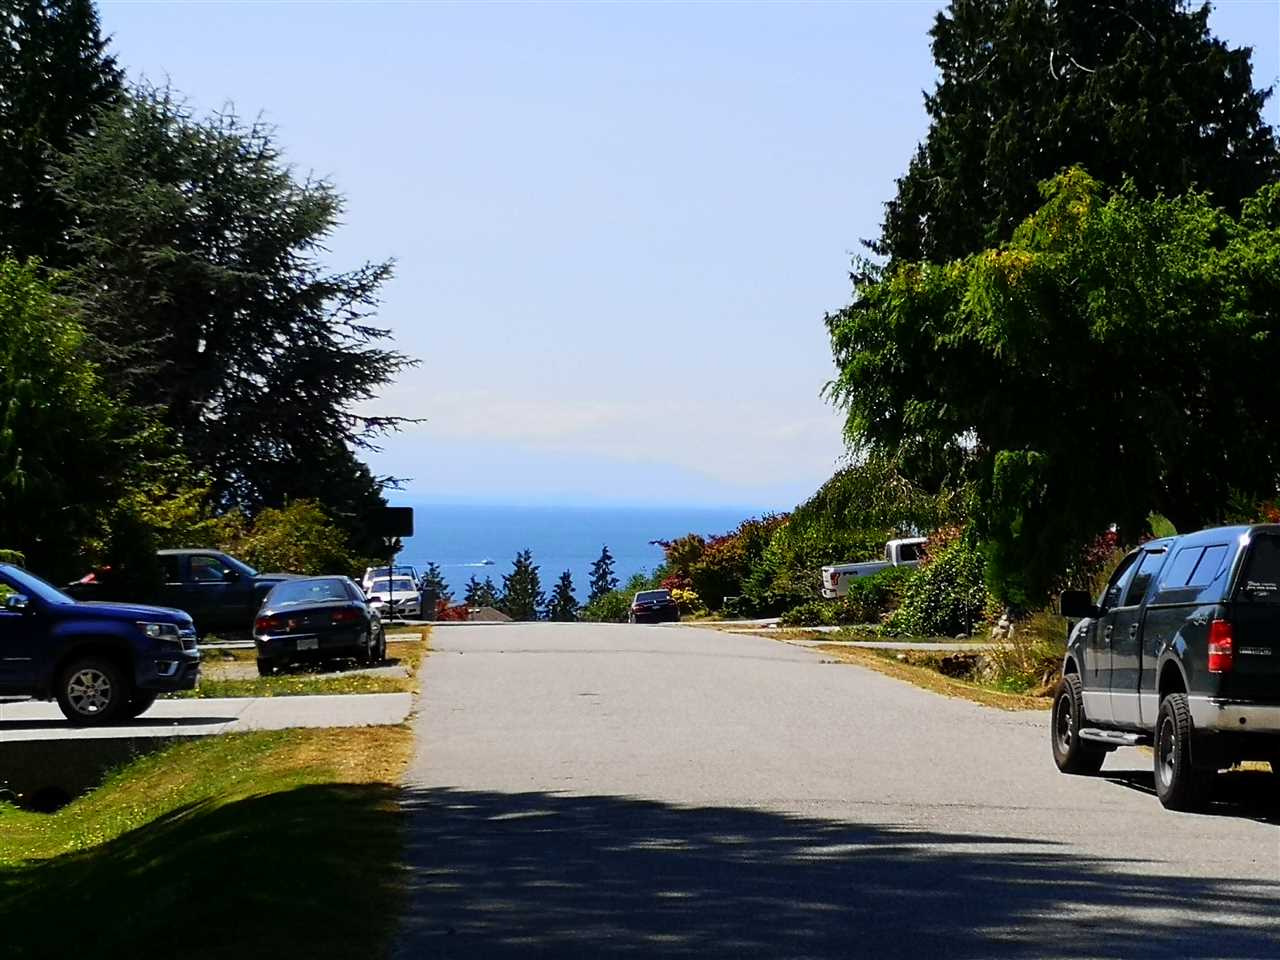 1448 BONNIEBROOK HEIGHTS ROAD - Gibsons & Area House/Single Family for sale, 3 Bedrooms (R2482137) - #21